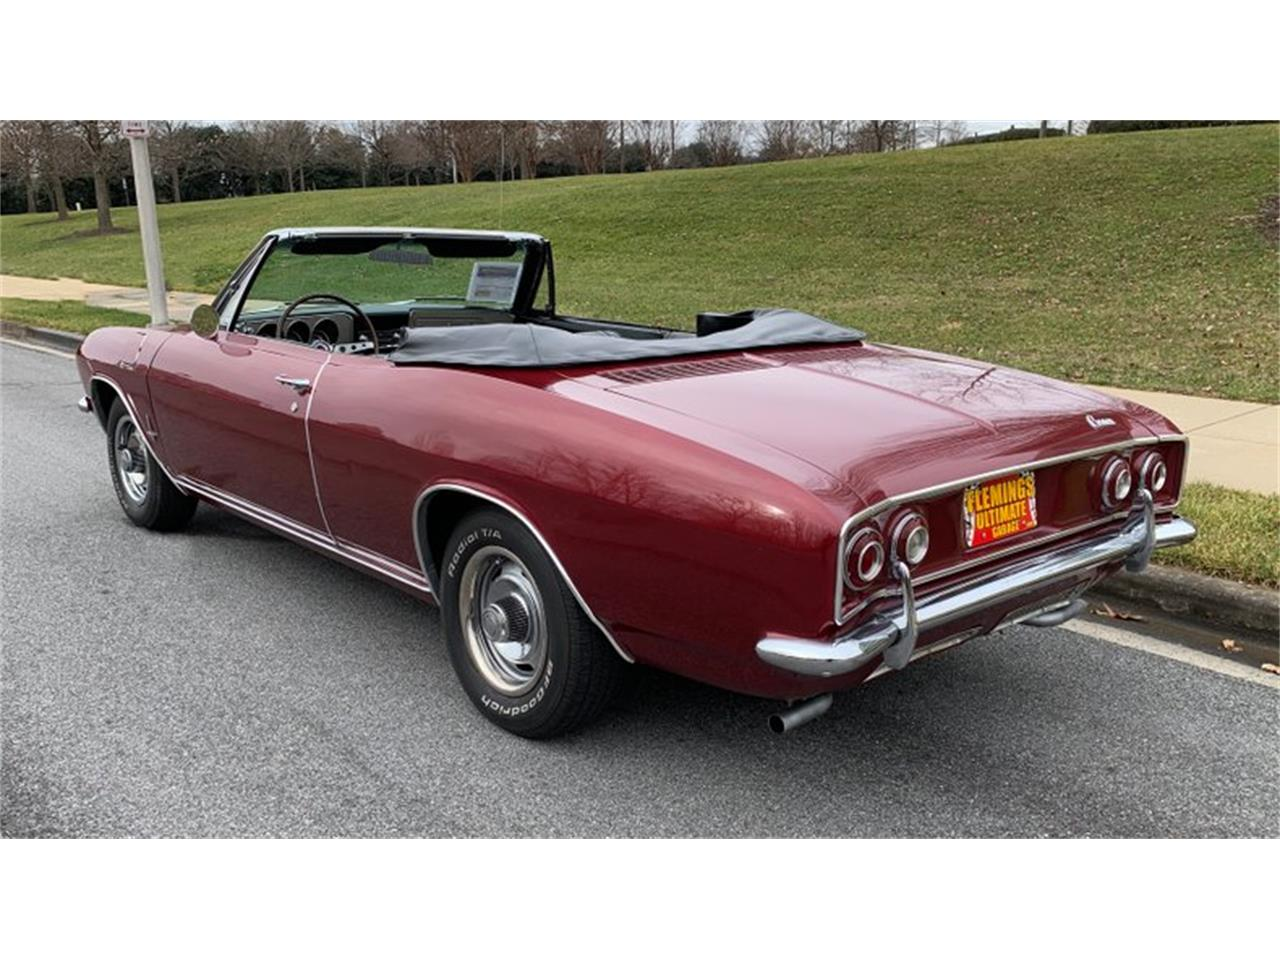 Large Picture of Classic 1965 Corvair located in Rockville Maryland - $19,990.00 - PF6P